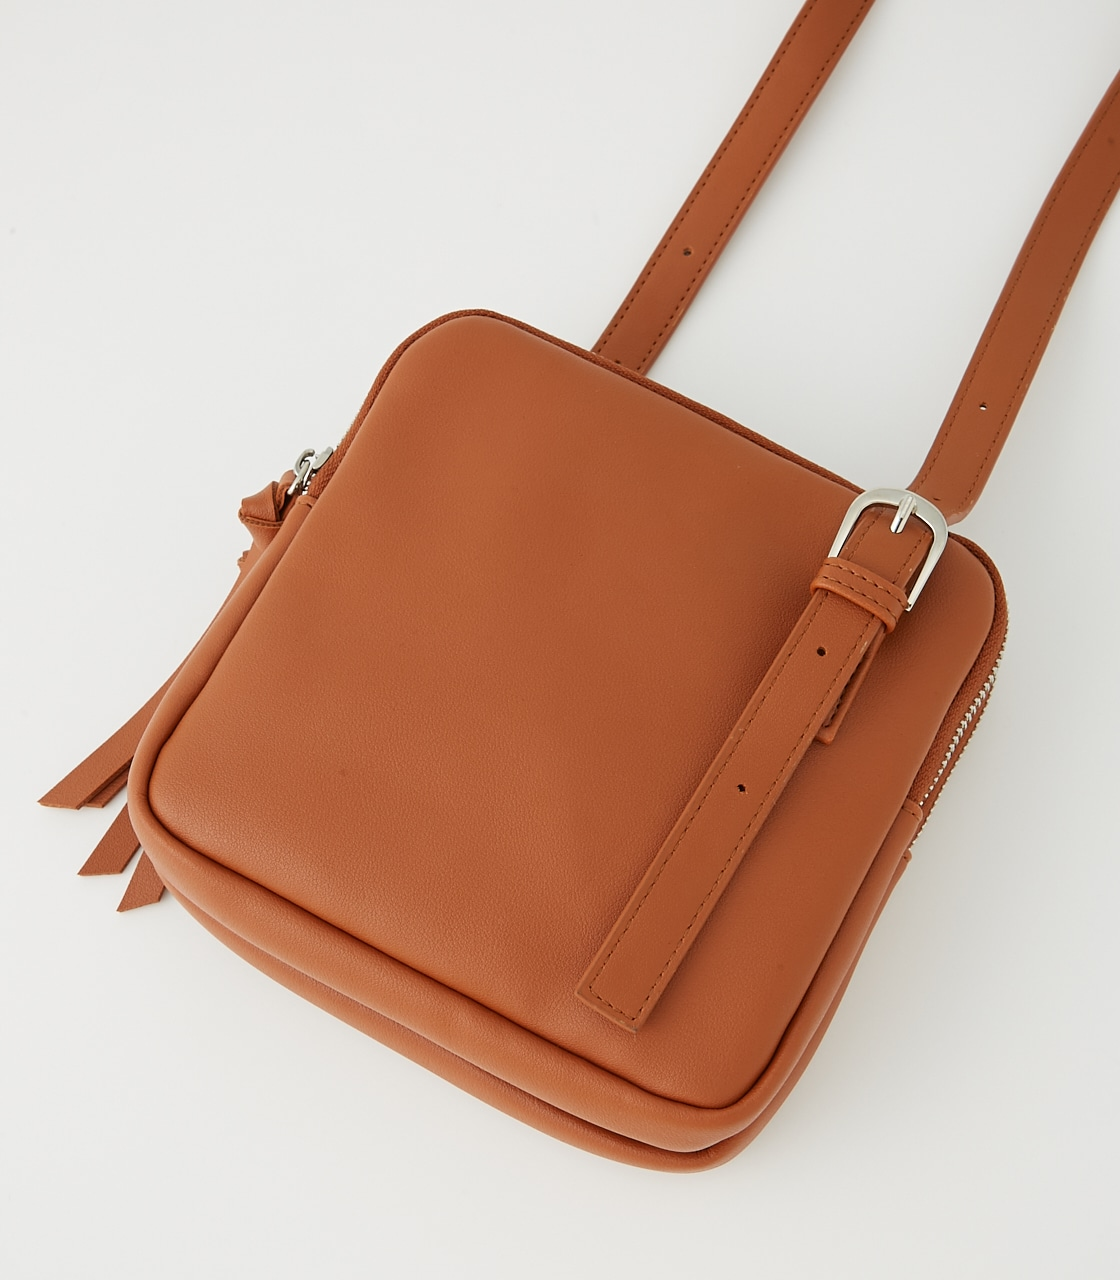 TWO IN ONE SHOULDER BAG 詳細画像 CAM 2